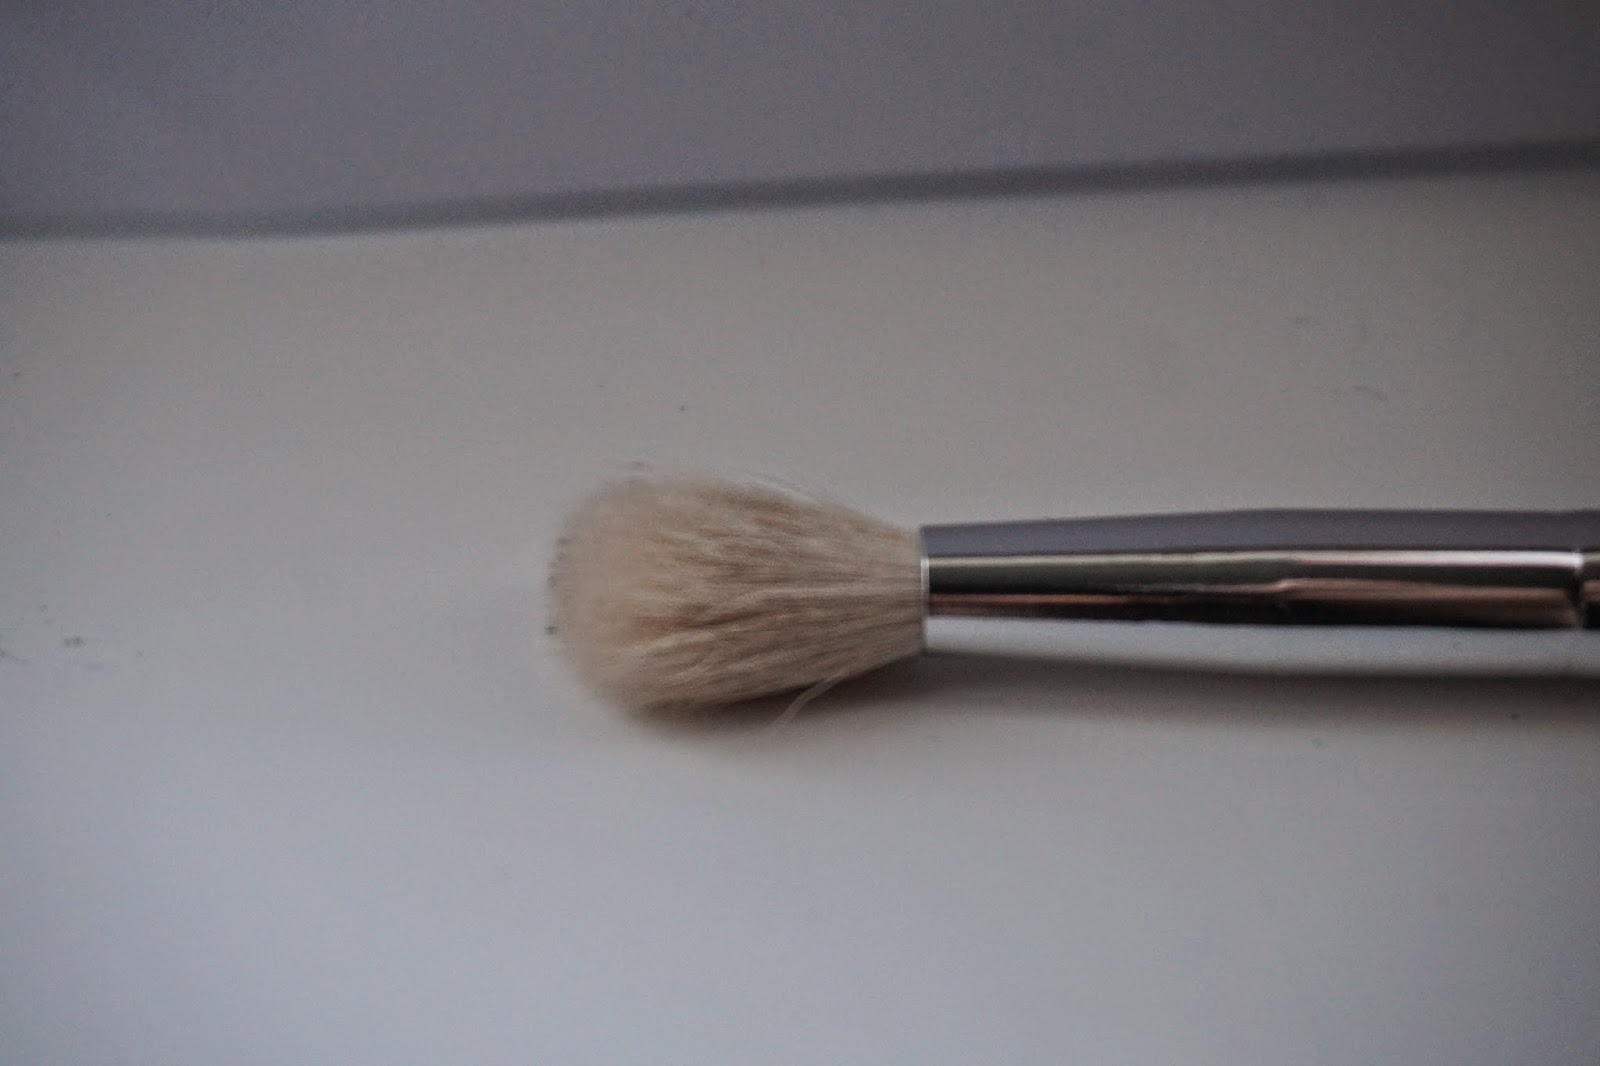 Crown Brush Review C430 DLX Pro Blending Crease - Dusty Foxes Beauty